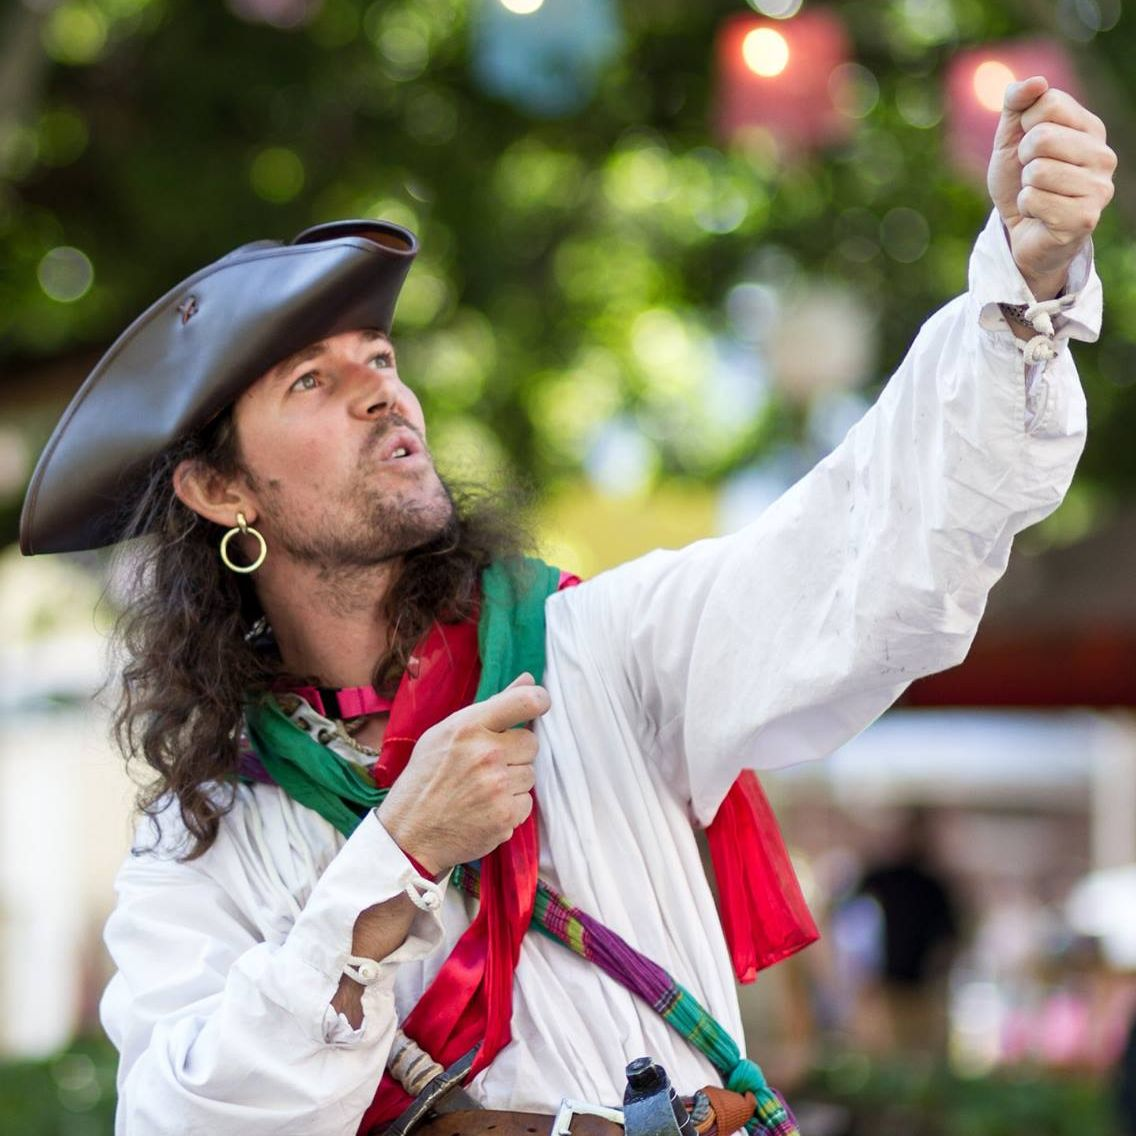 Pirate Adventure with FREE Ship Tour (includes AQWA Entry)